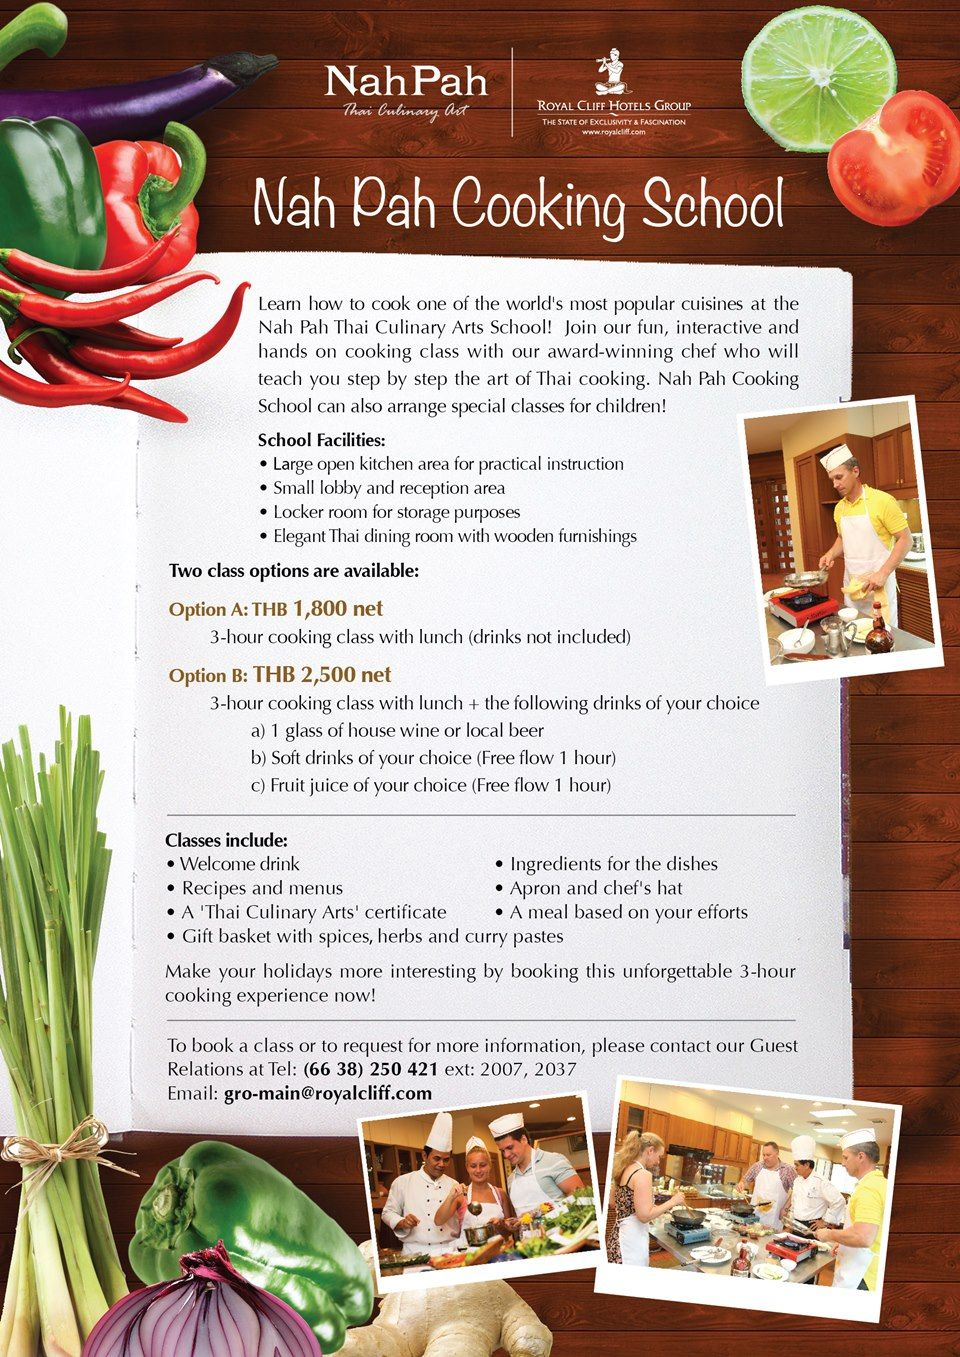 Nah pah thai cooking class pattaya graphic design pinterest learn the skills of thai cooking one of the worlds most popular cuisines at the nah pah thai culinary arts school our award winning chef will teach you 1betcityfo Images